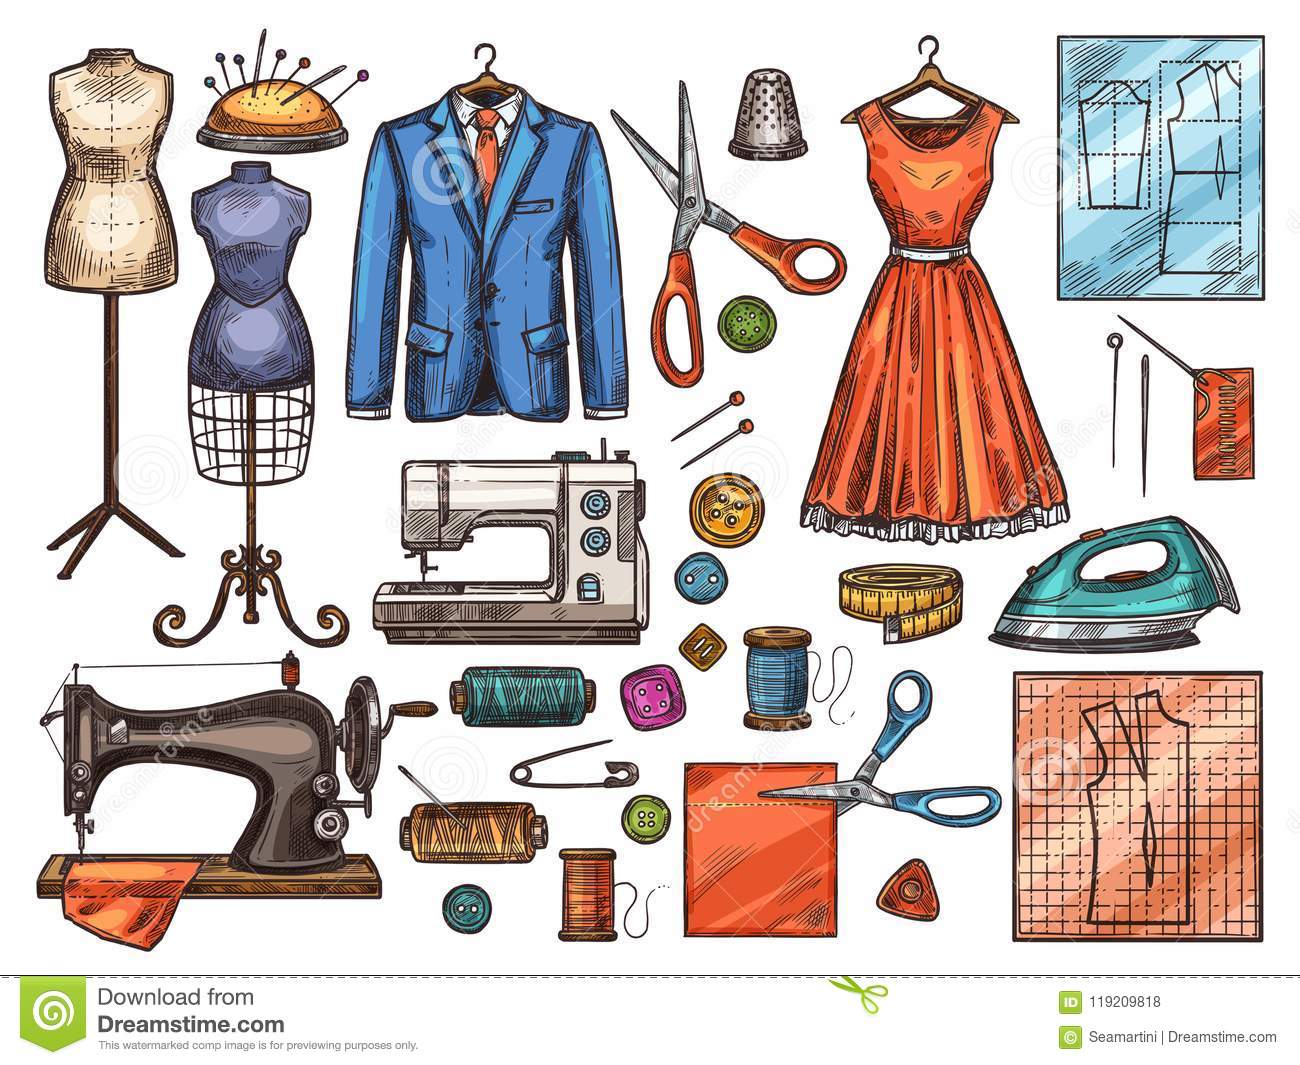 Sewing Tool And Tailor Equipment Sketch Design Stock Vector Illustration Of Hobby Dress 119209818